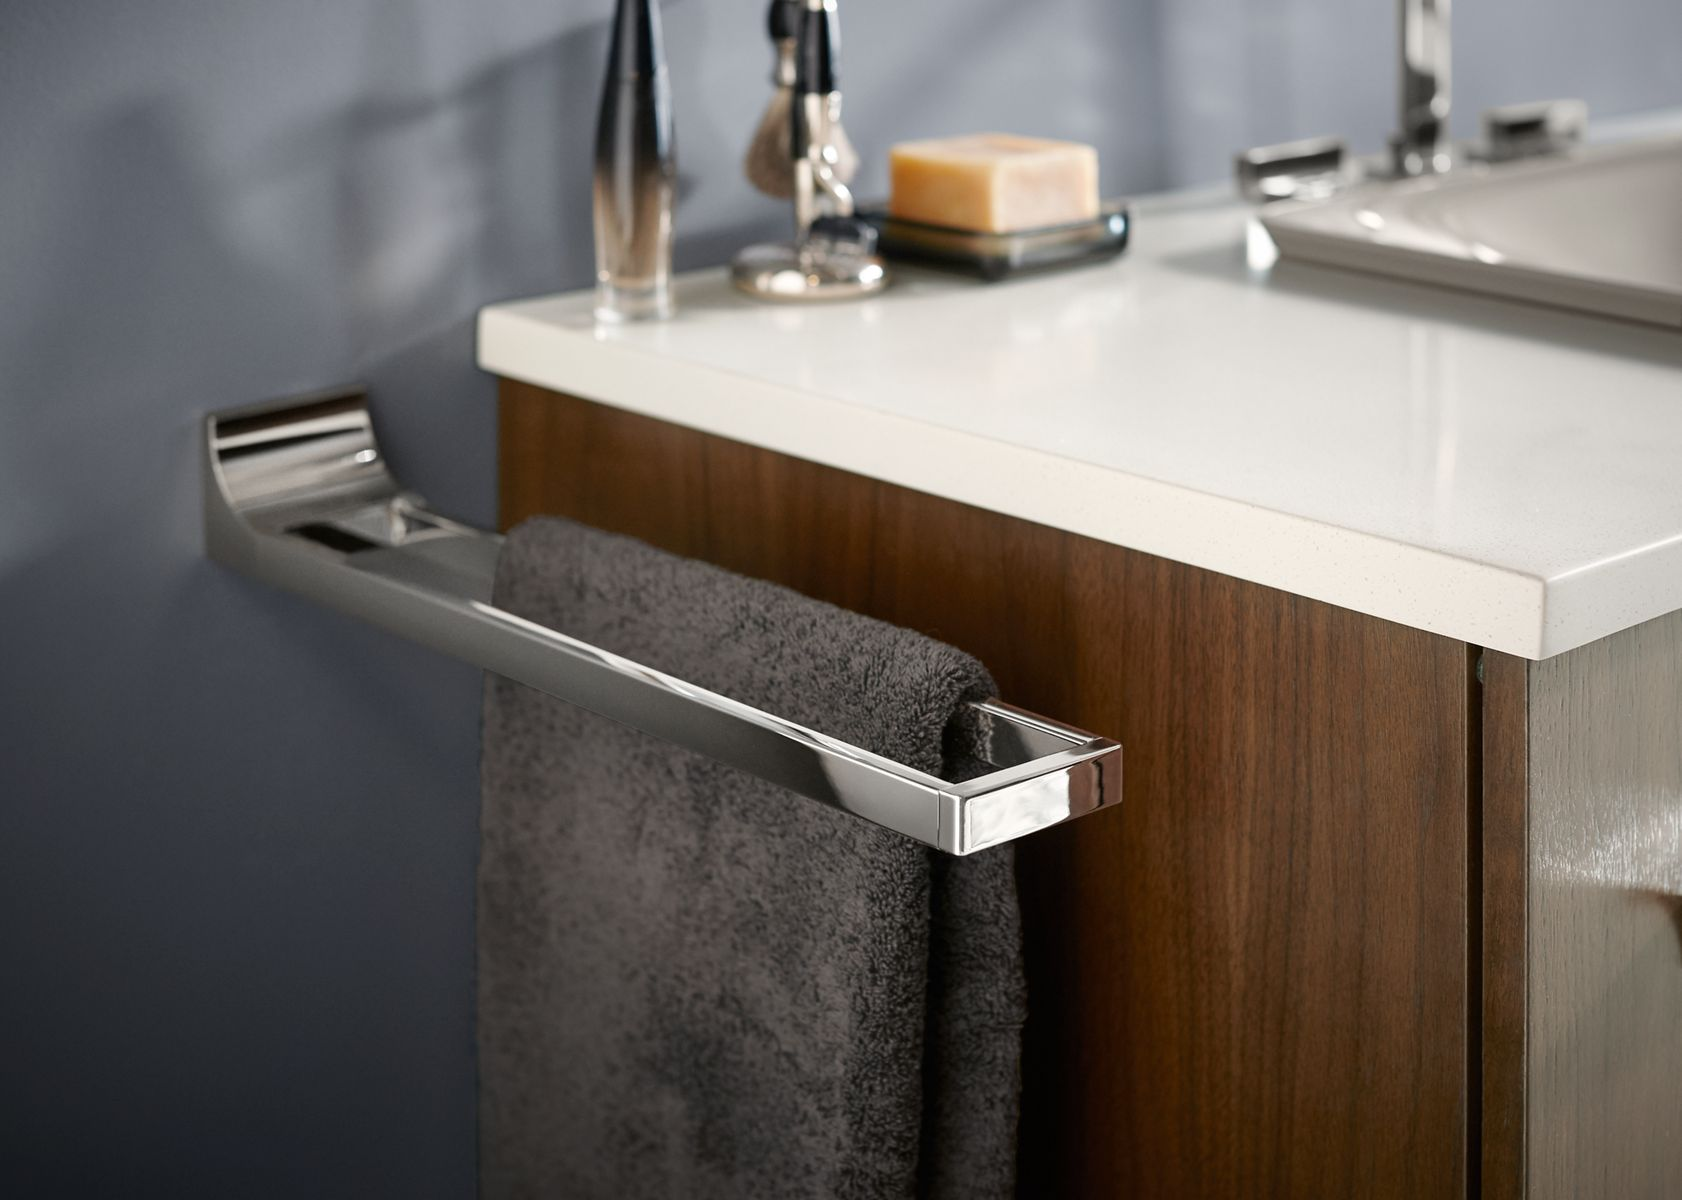 Charmant Bathroom Accessories, Hardware And Lighting Guide